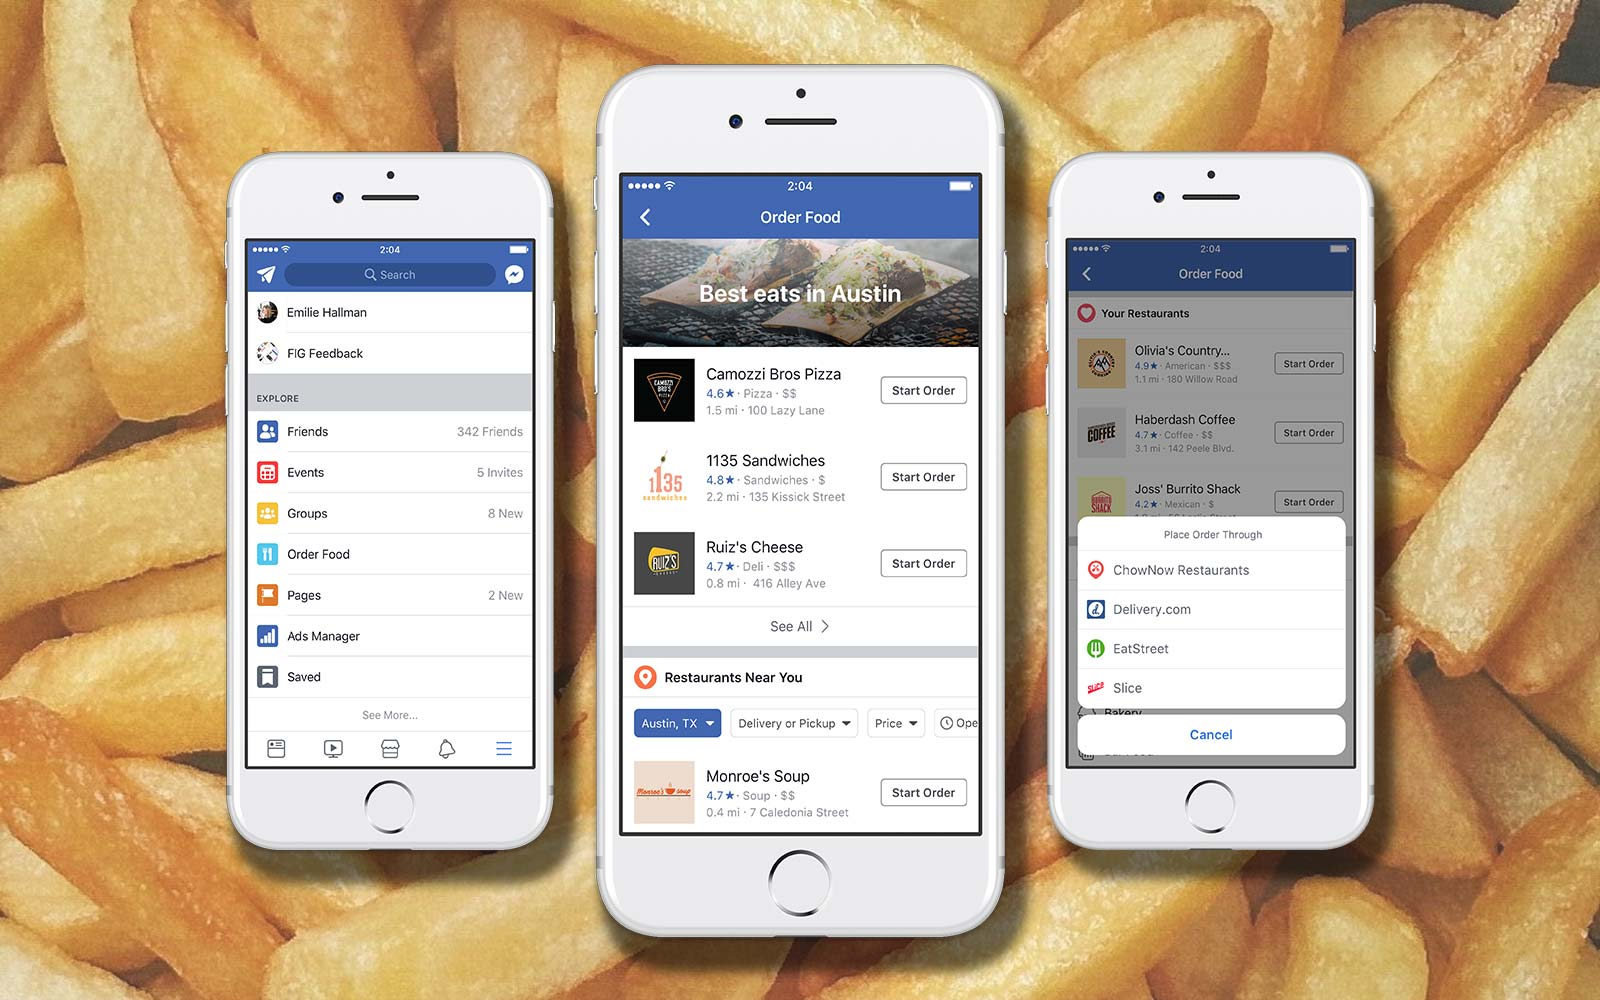 Facebook Takes A Page From Amazon In The Food-Ordering Game